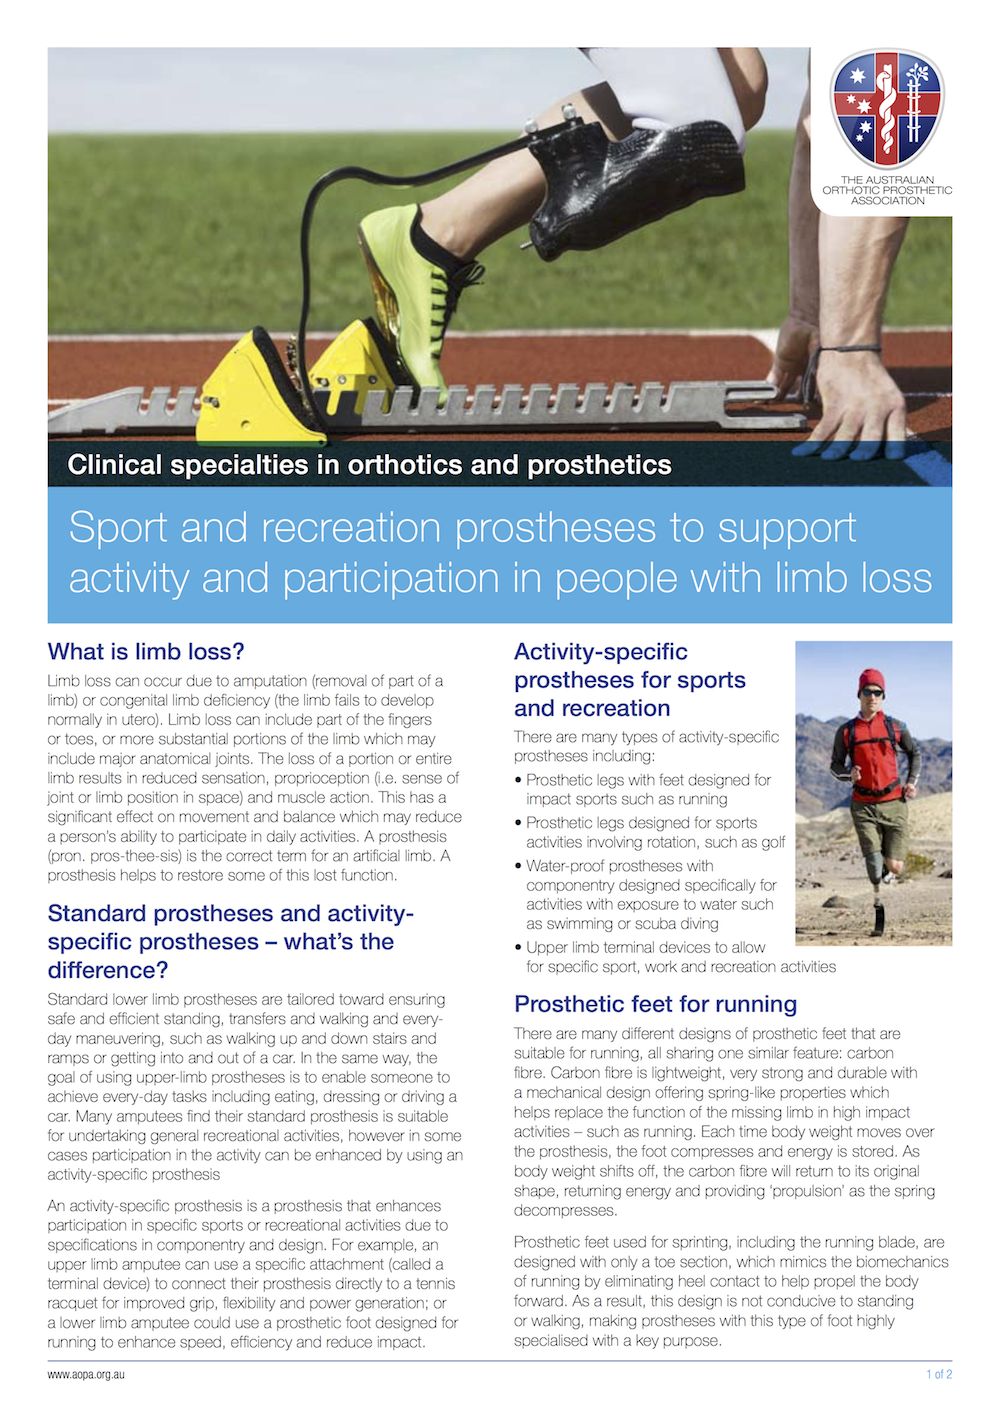 Australian Orthotic Prosthetic Association - Recreational Prostheses